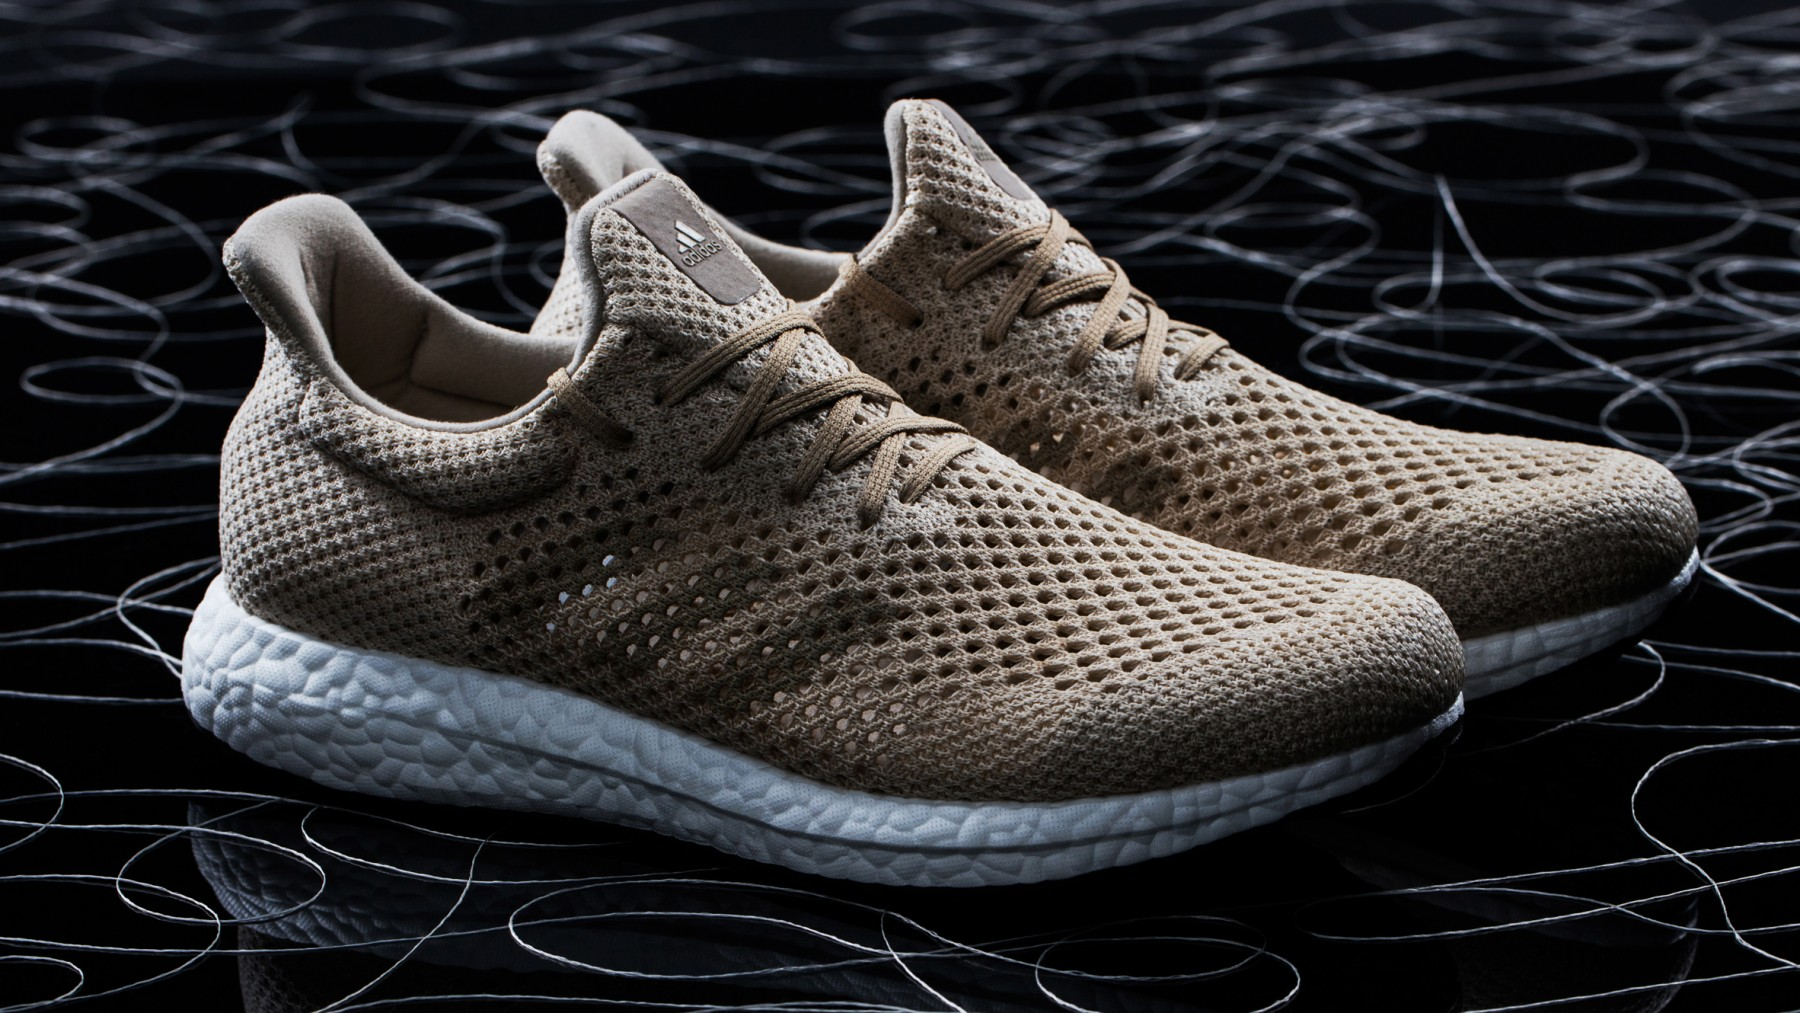 adidas-ultra-boost-biodegradable-1-1800x1013